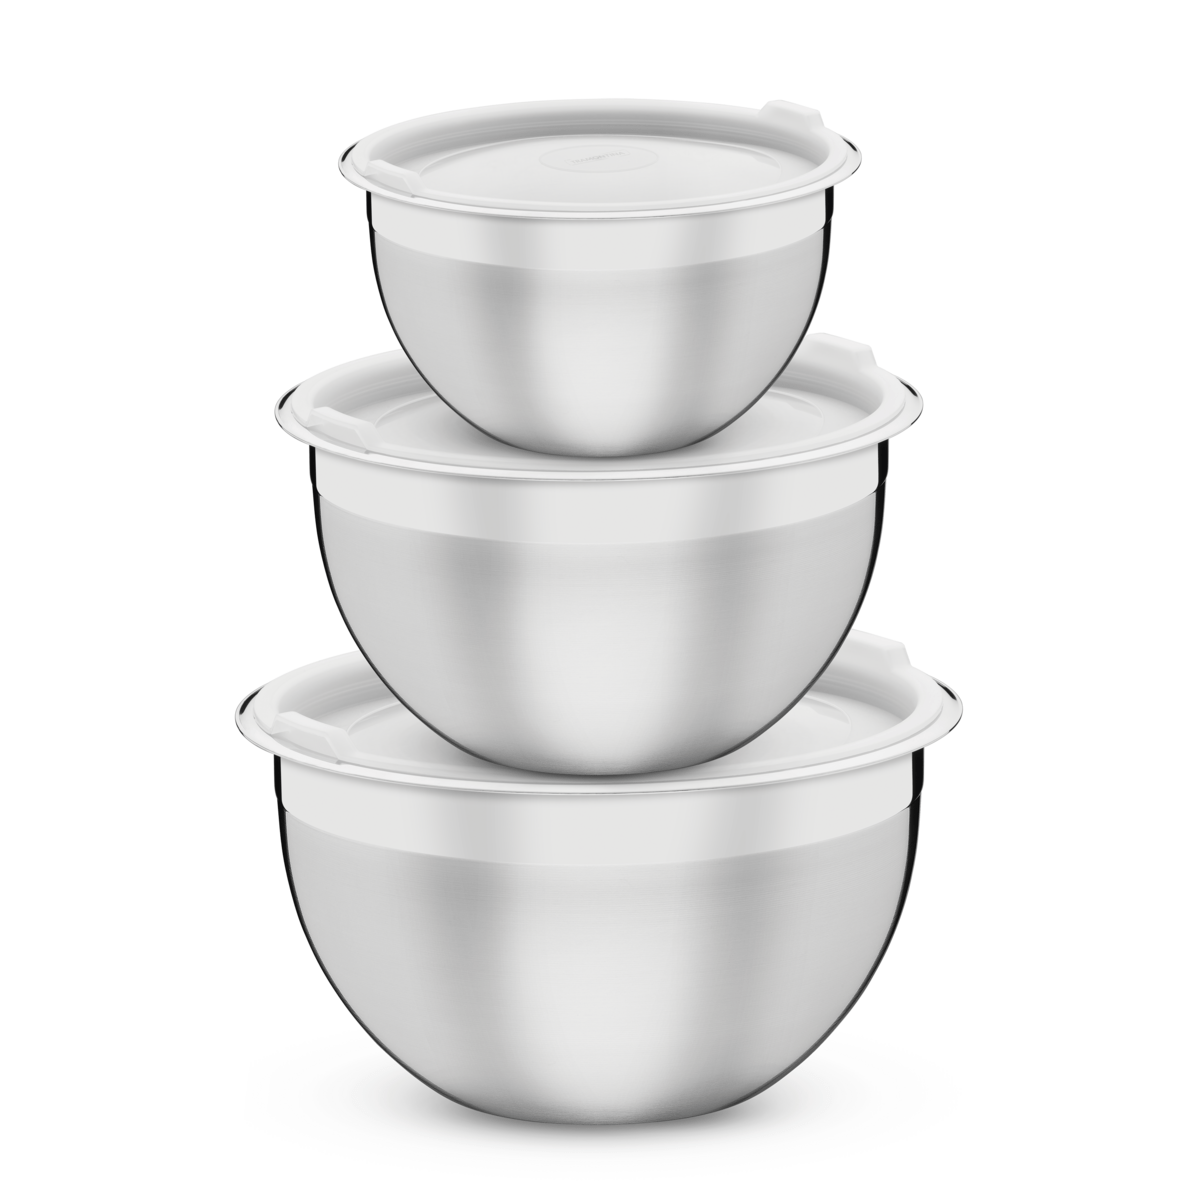 Container Cucina Tramontina Cucina Stainless Steel Container Set With Plastic Lids